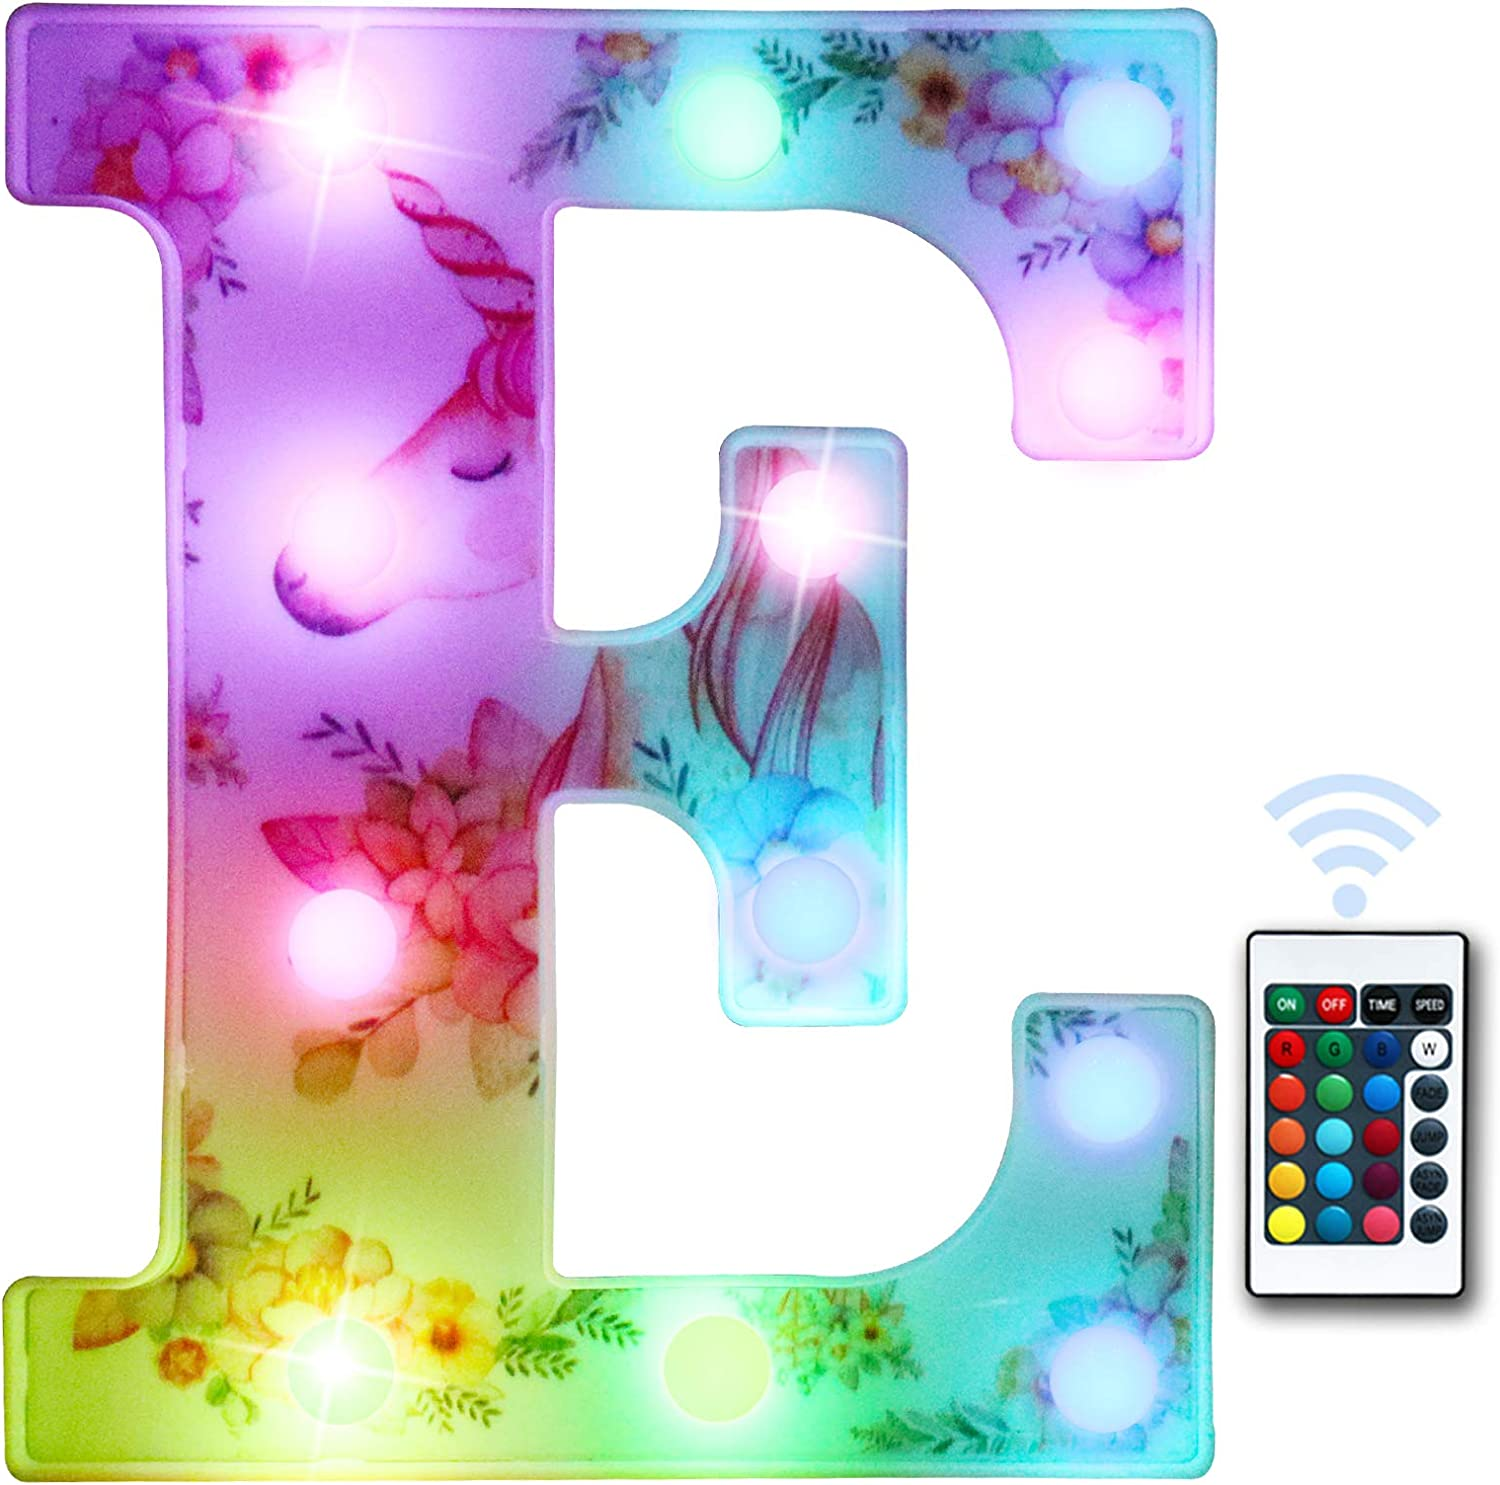 LED Marquee Letter Lights Color Changing Light up Unicorn Decorations Letter Sign with Remote, Birthday Party Home Girls Room Decor Gifts - Colorful Letter E